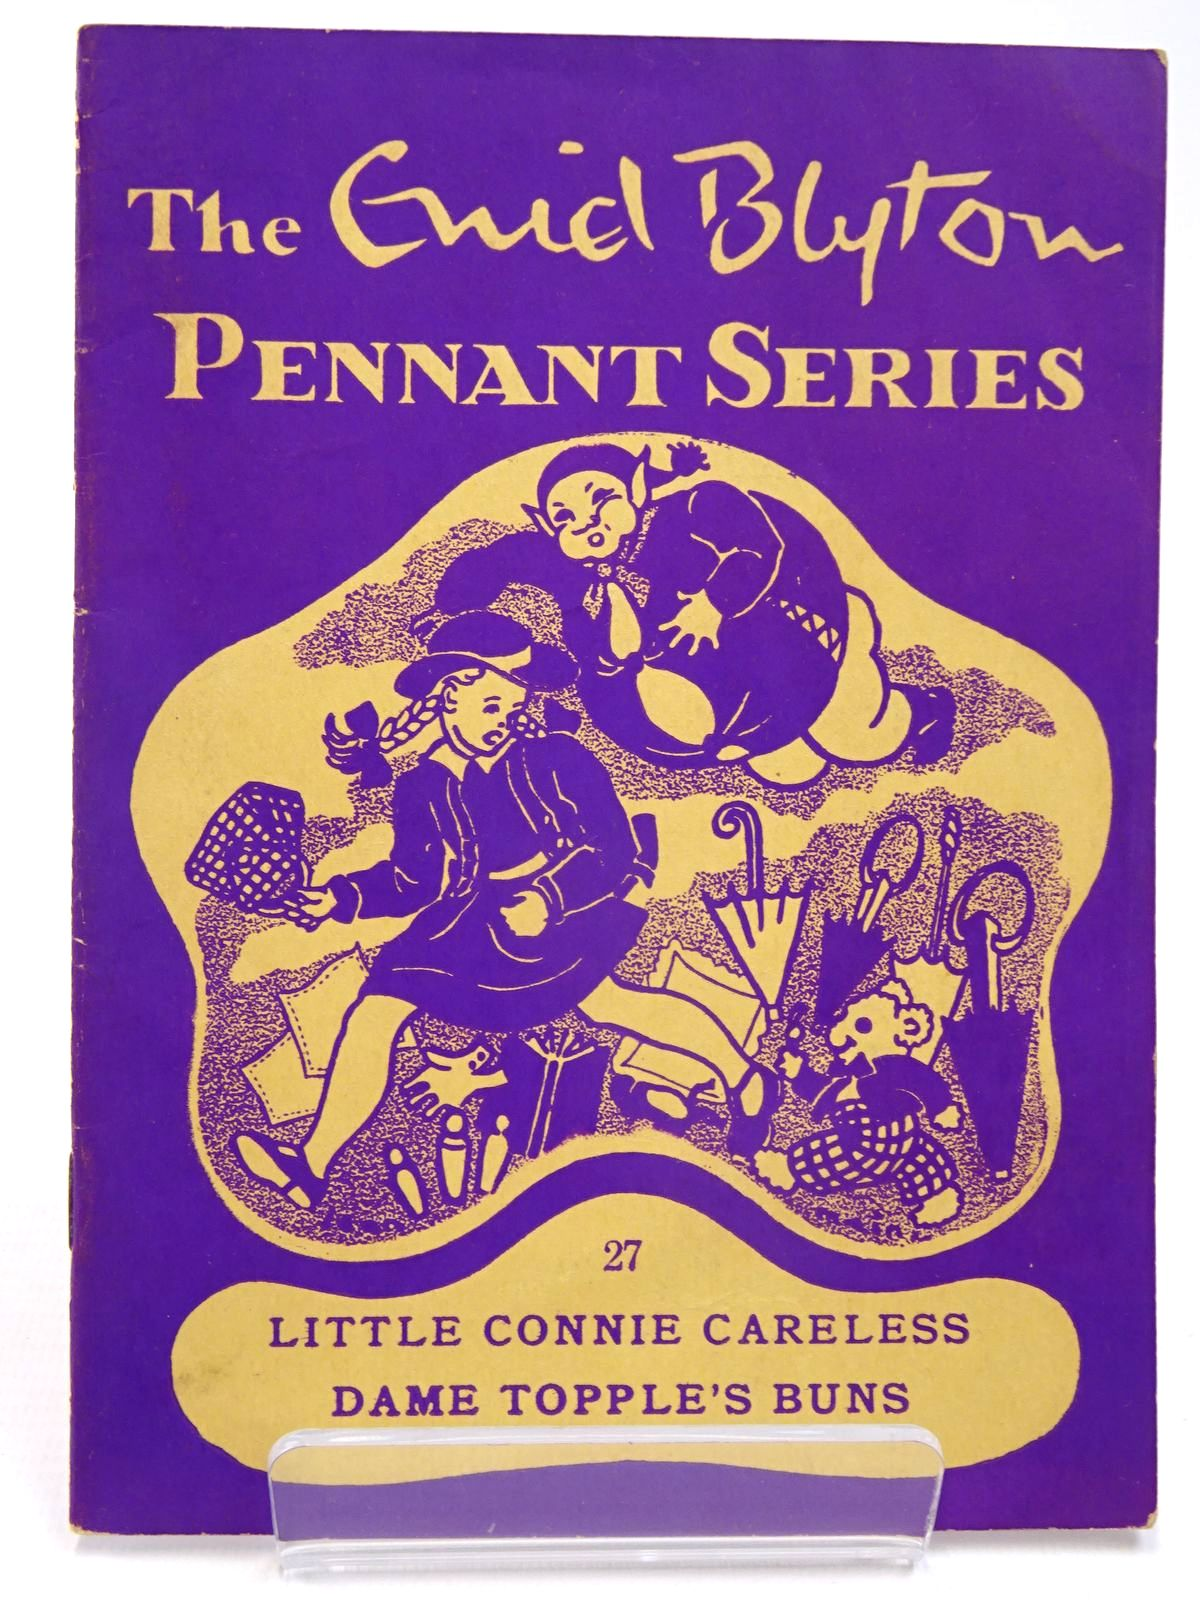 Photo of THE ENID BLYTON PENNANT SERIES No. 27 LITTLE CONNIE CARELESS / DAME TOPPLE'S BUNS written by Blyton, Enid illustrated by Soper, Eileen Main, Jean published by Macmillan & Co. Ltd. (STOCK CODE: 2130513)  for sale by Stella & Rose's Books